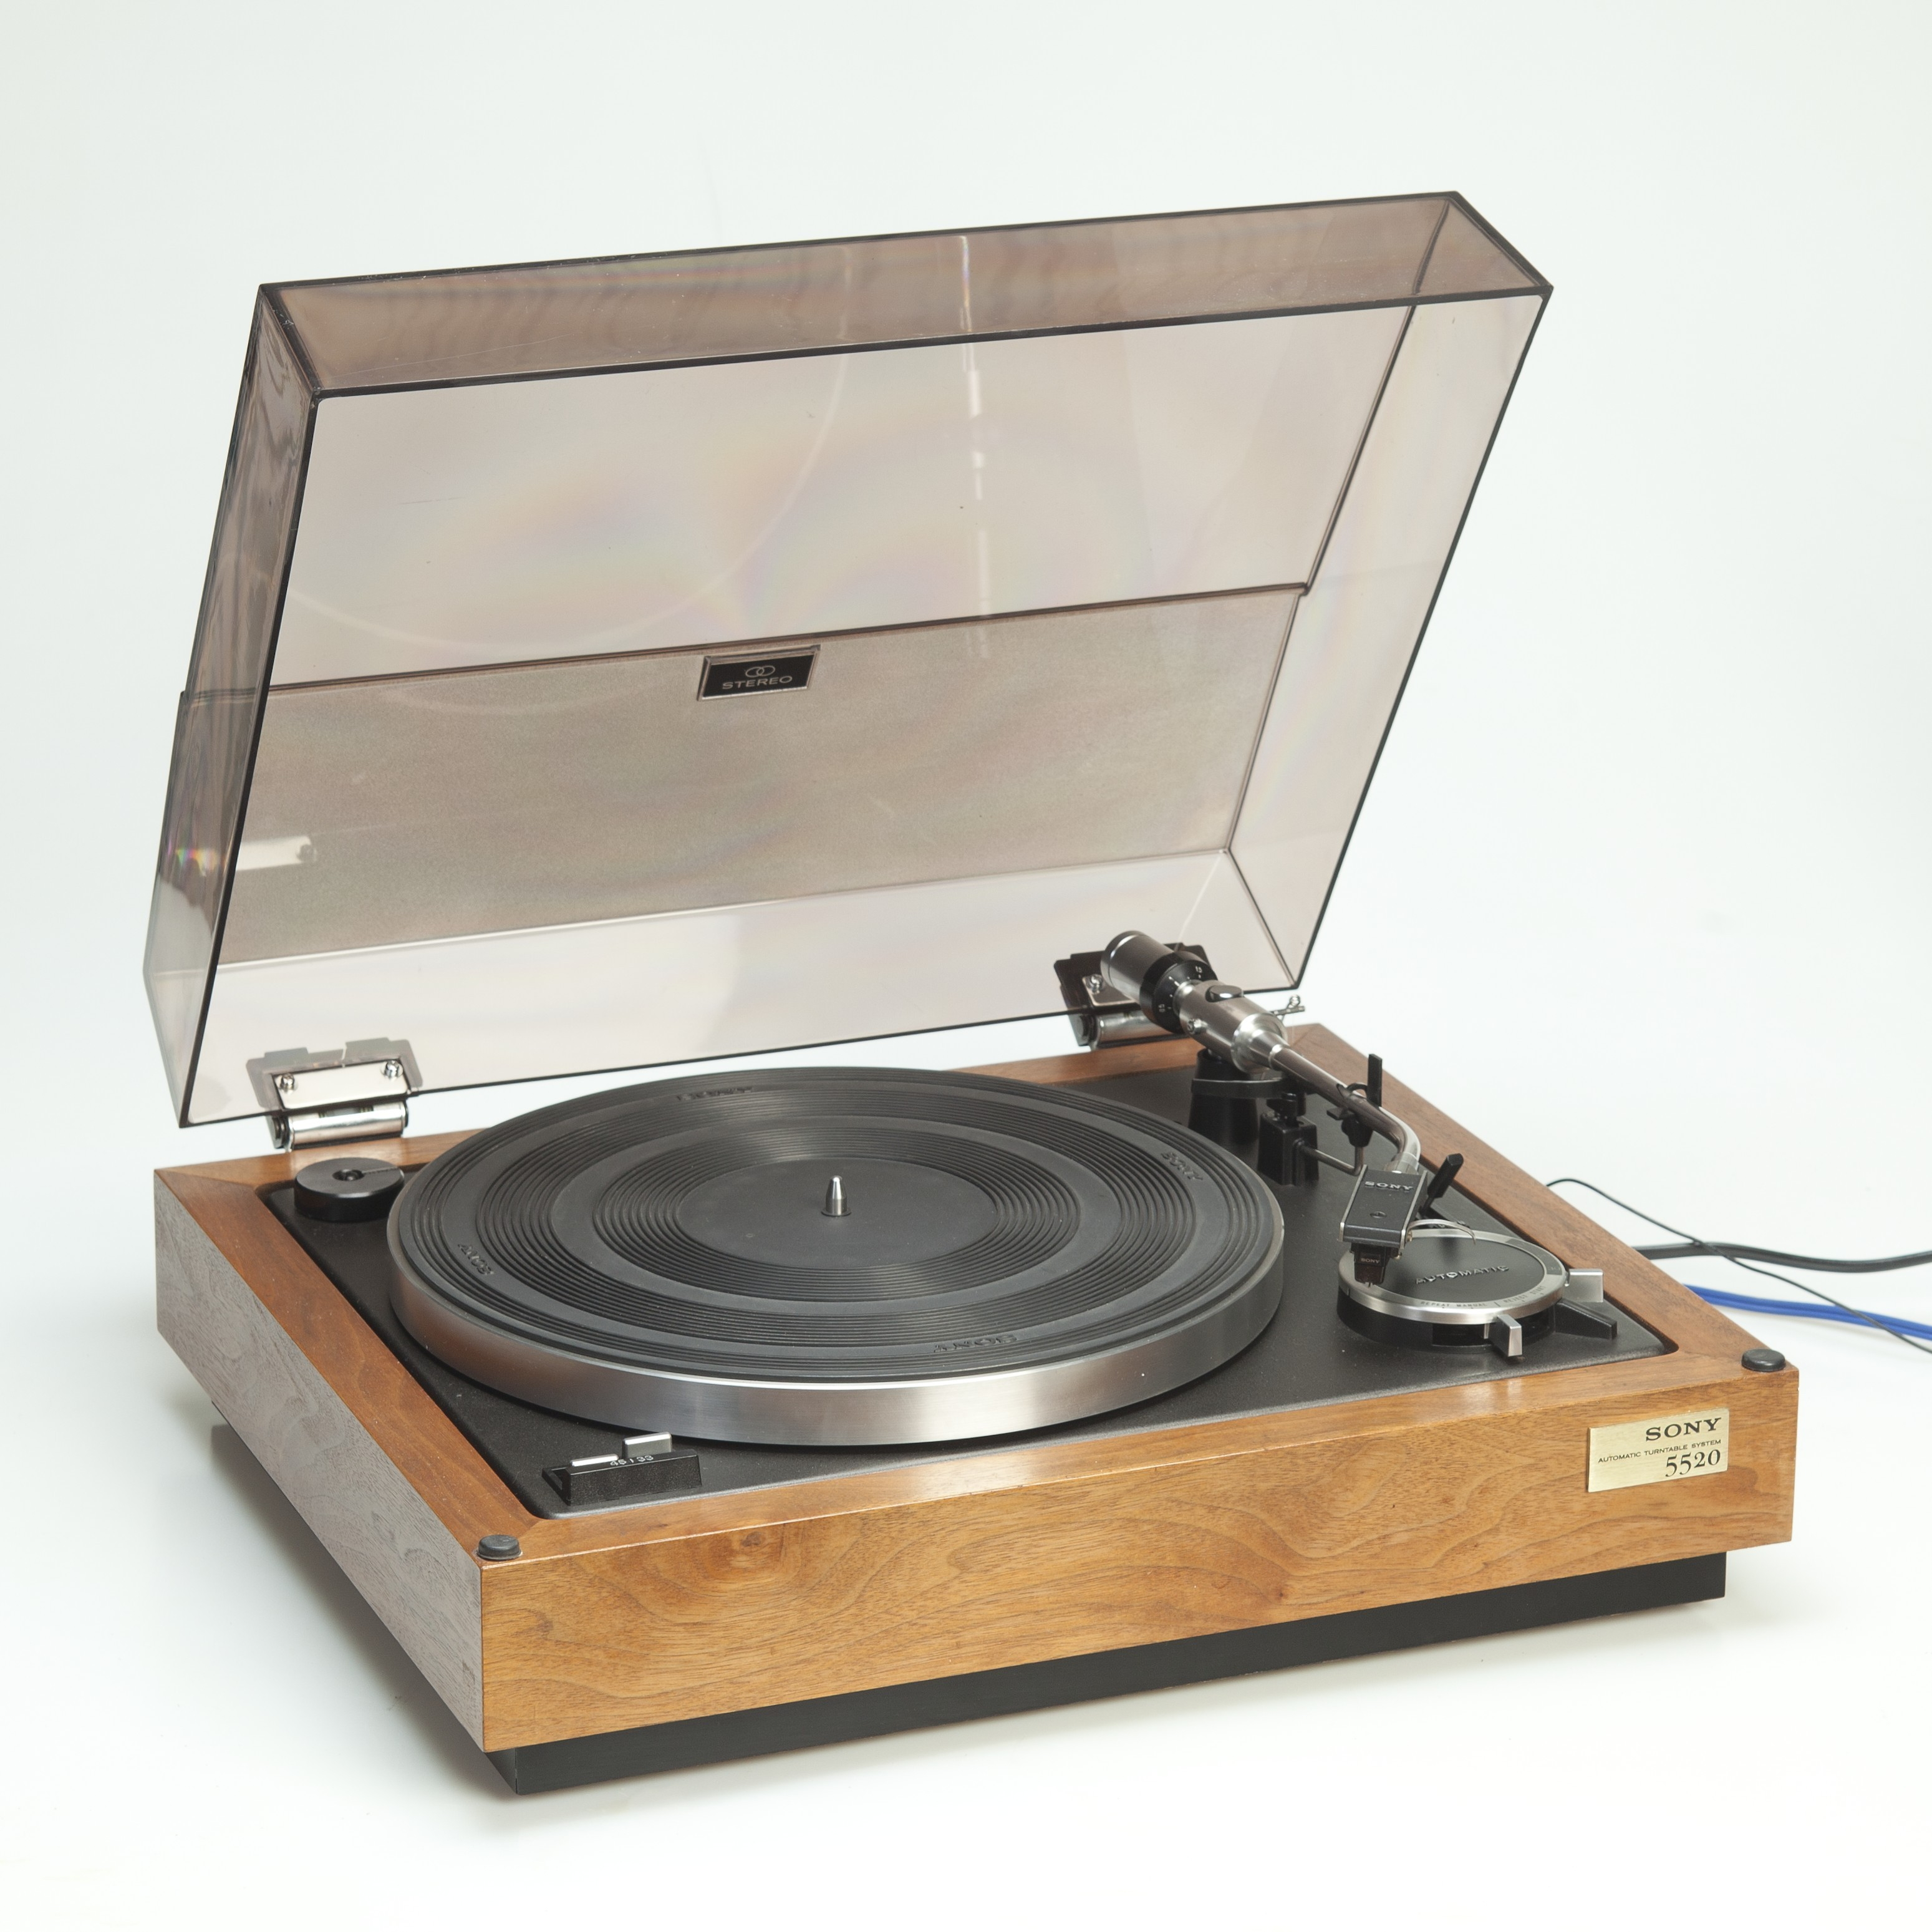 Sony Ps 5520 Turntable